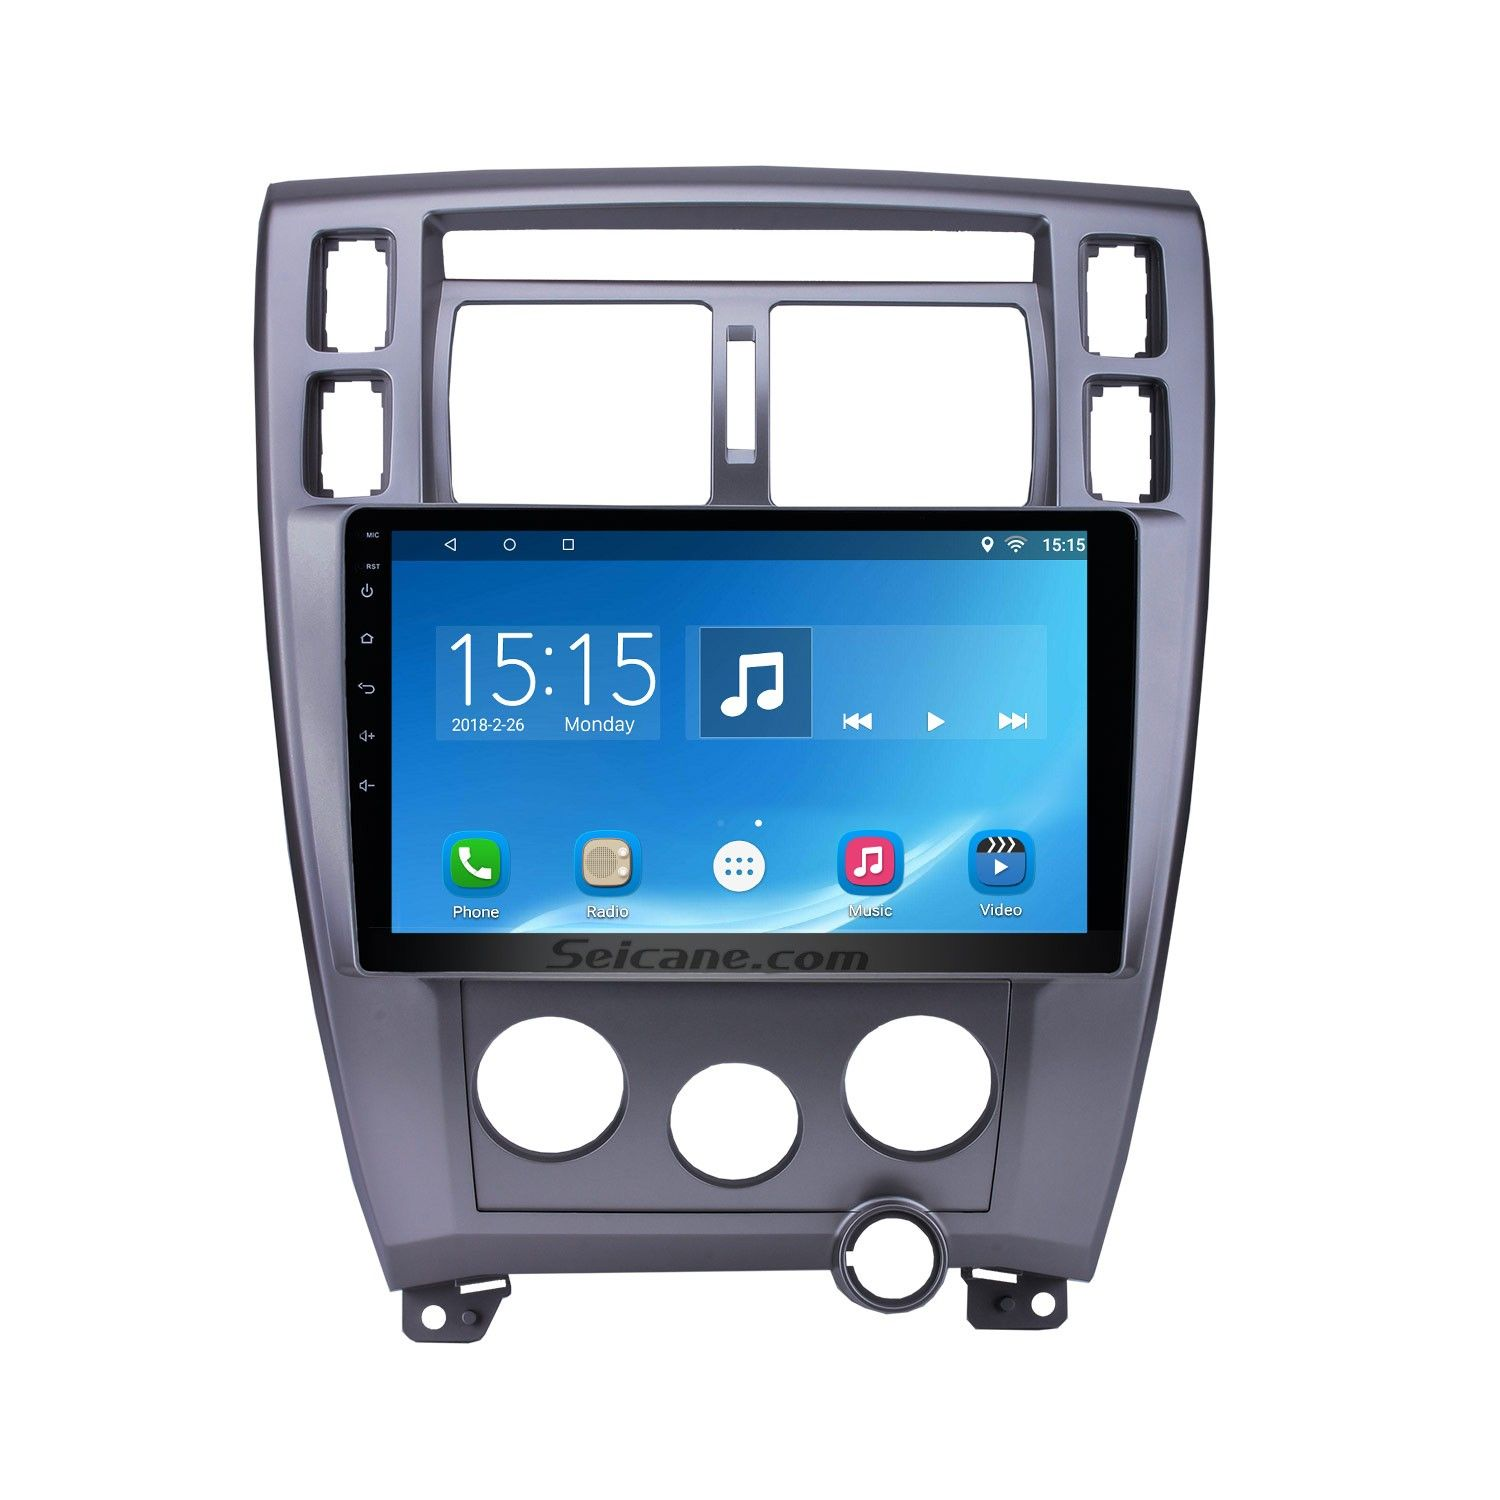 10 1 Inch Android 10 0 Hd Touchscreen Radio For 2006 2013 Hyundai Tucson Lhd Gps Navigation Car Stereo Bluetooth Support Mirror Link Obd2 3g Wifi Dvr 1080p Vide Car Stereo Gps Navigation Gps